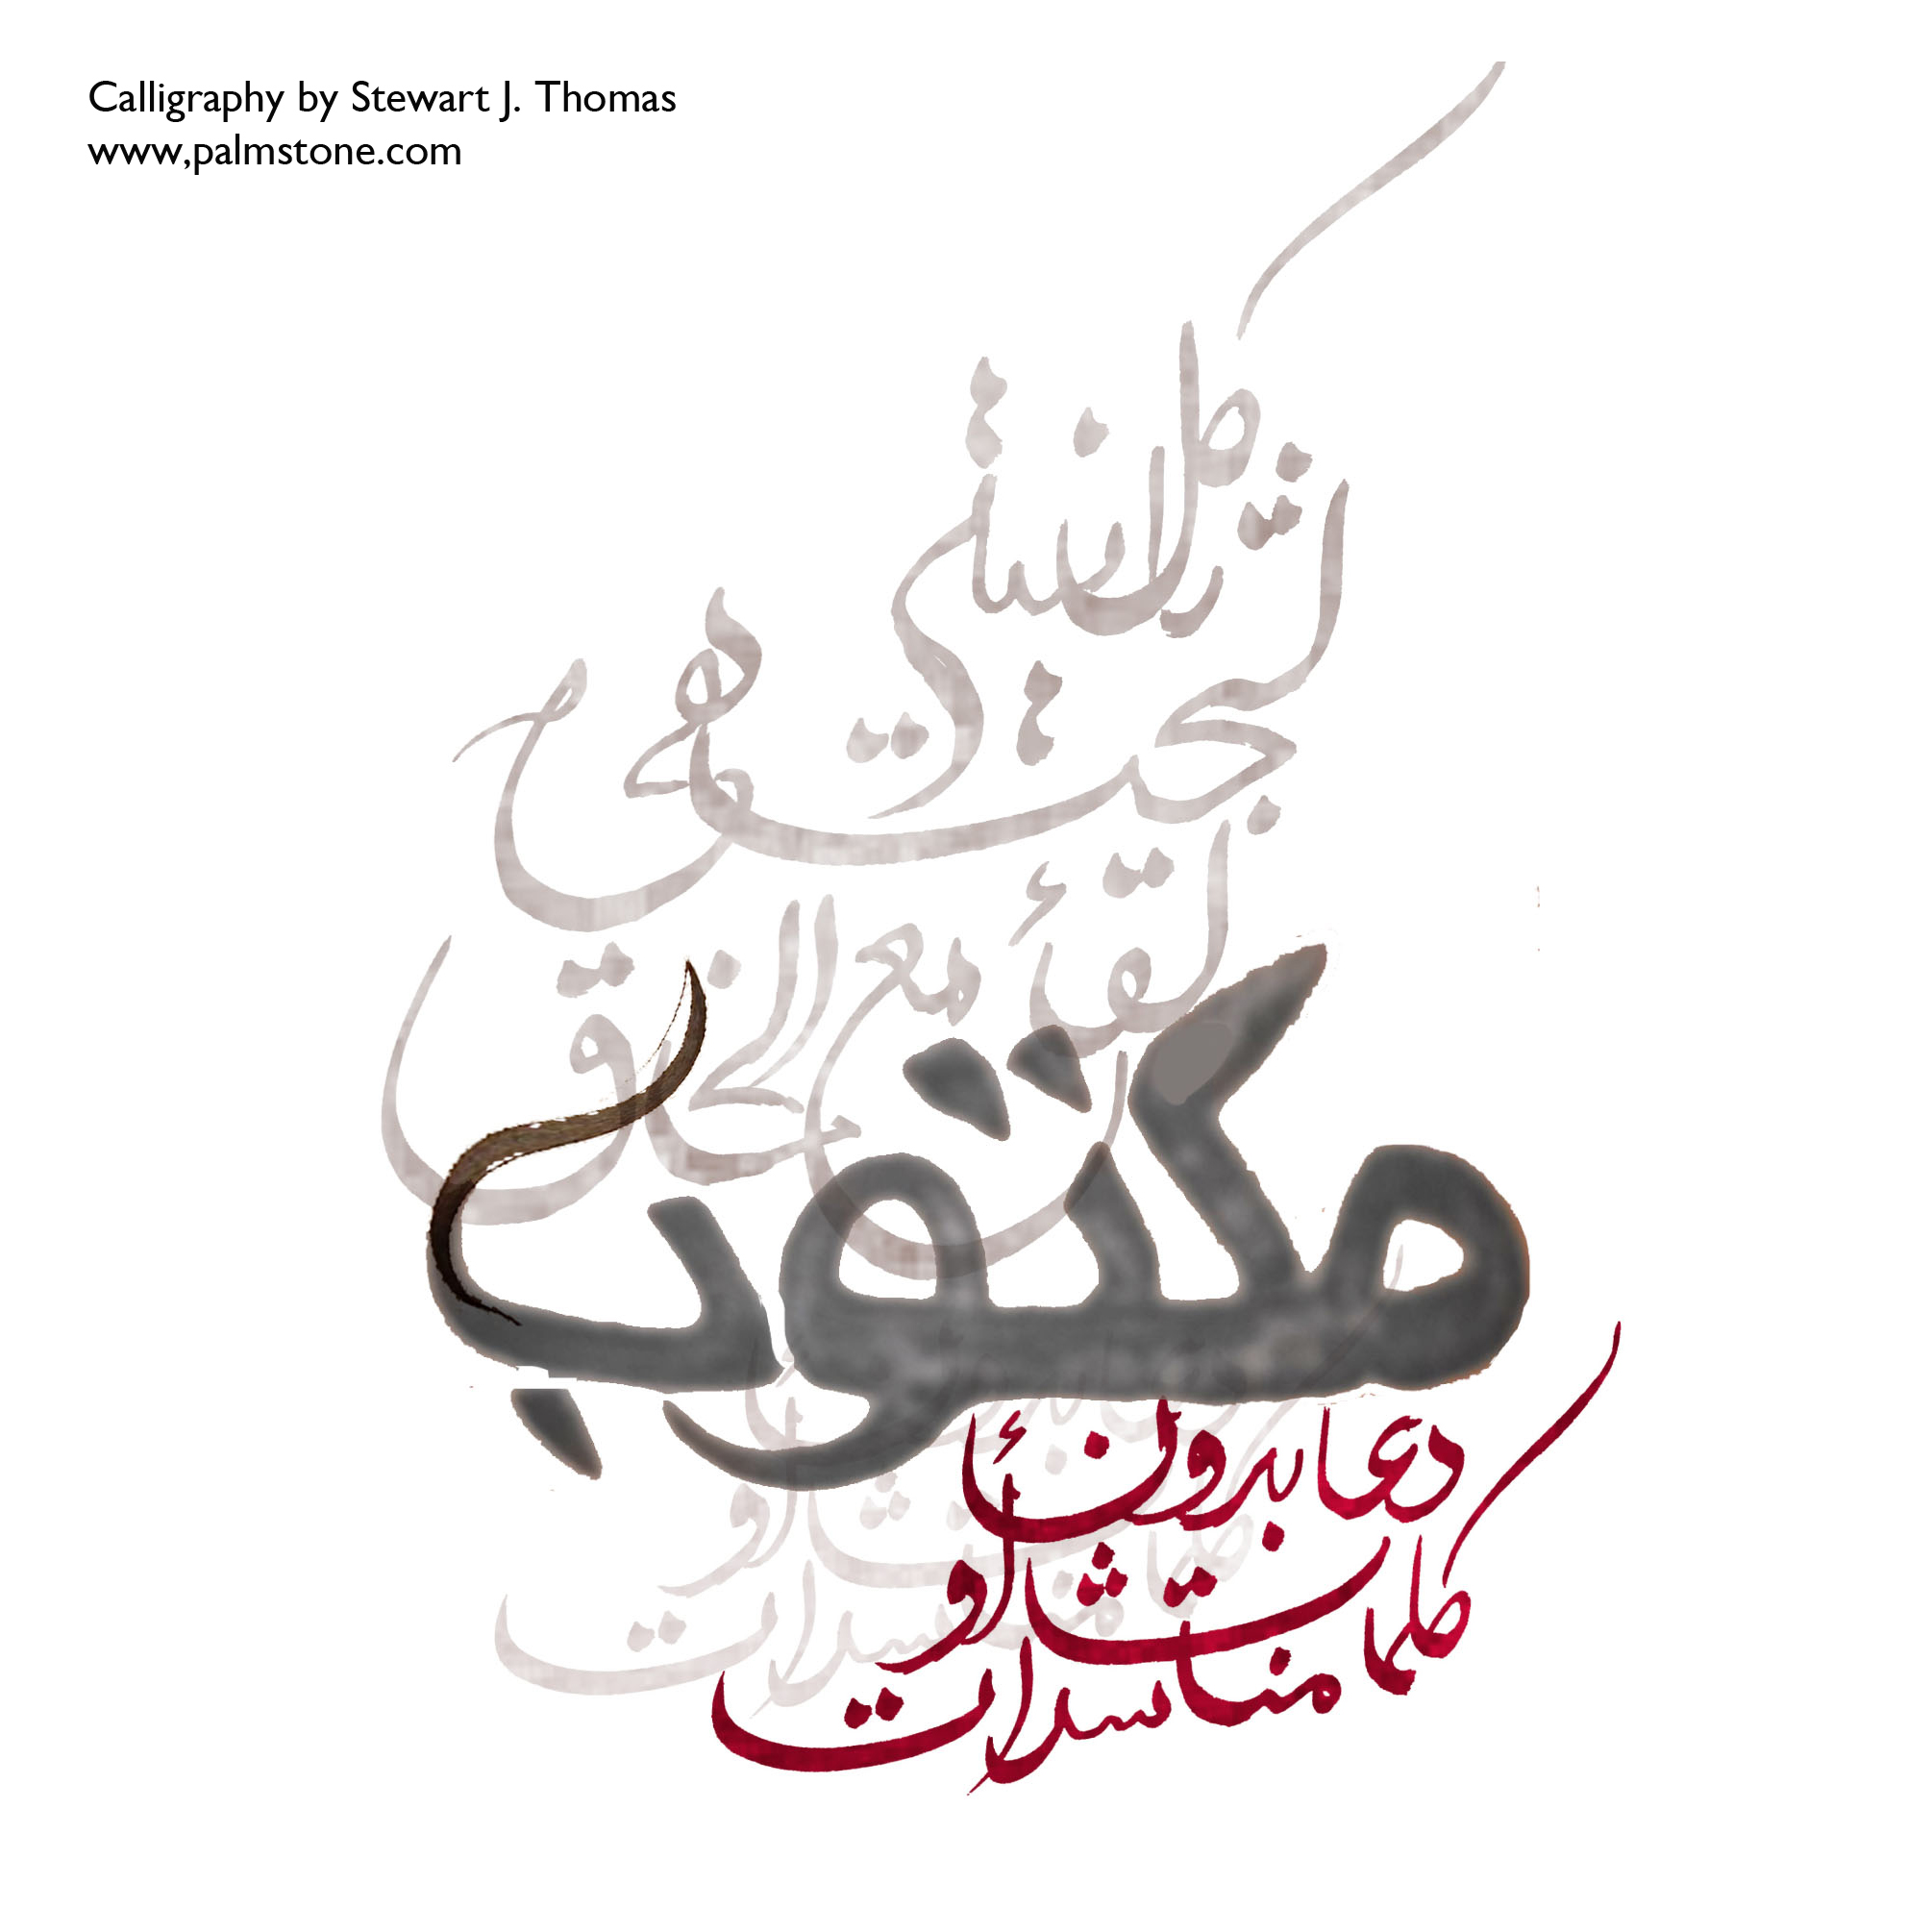 Arabic Farsi Persian Dari Urdu Calligraphy - Arabic, Persian